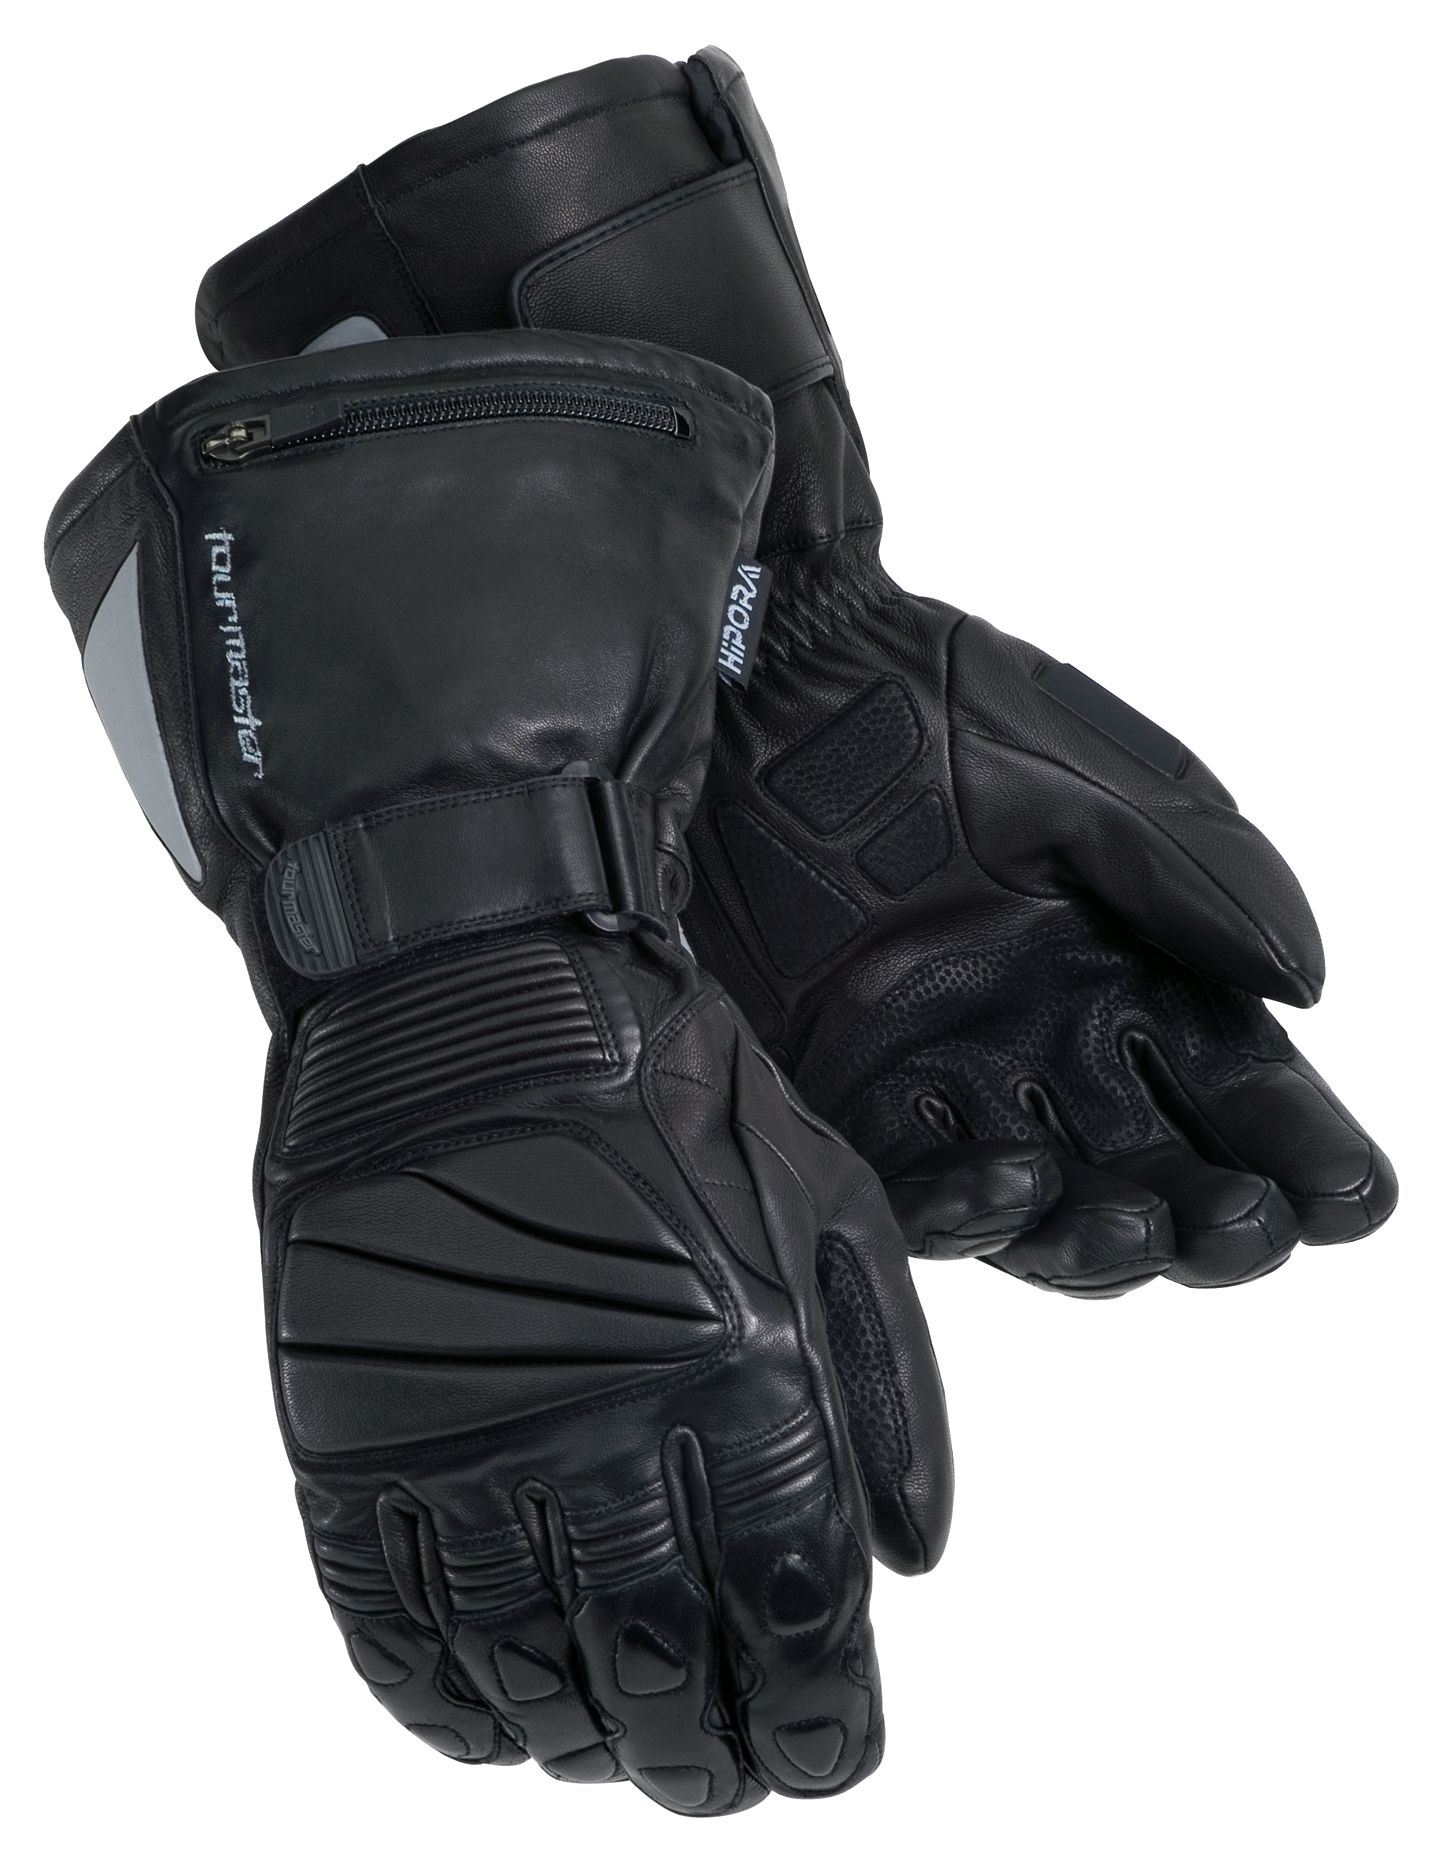 Insulated leather motorcycle gloves - Insulated Leather Motorcycle Gloves 9